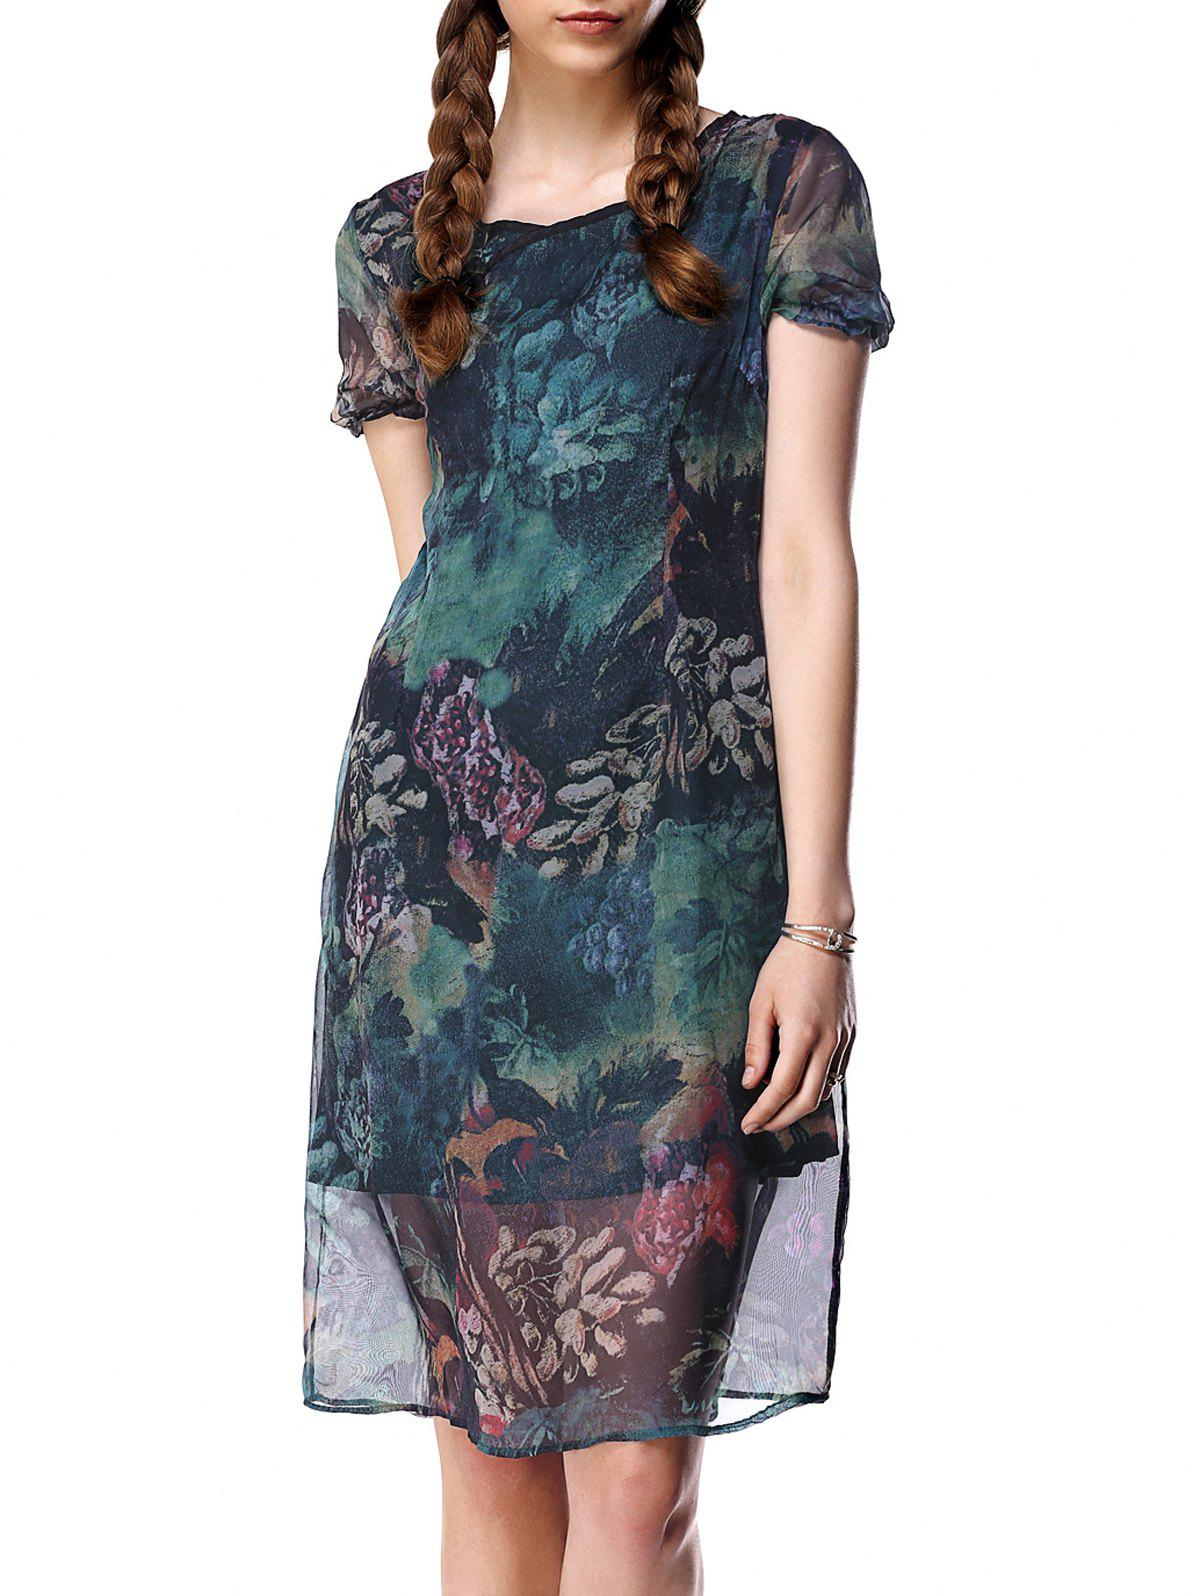 Gauzy Short Sleeve Floral Pattern Dress For Women - GREEN 2XL